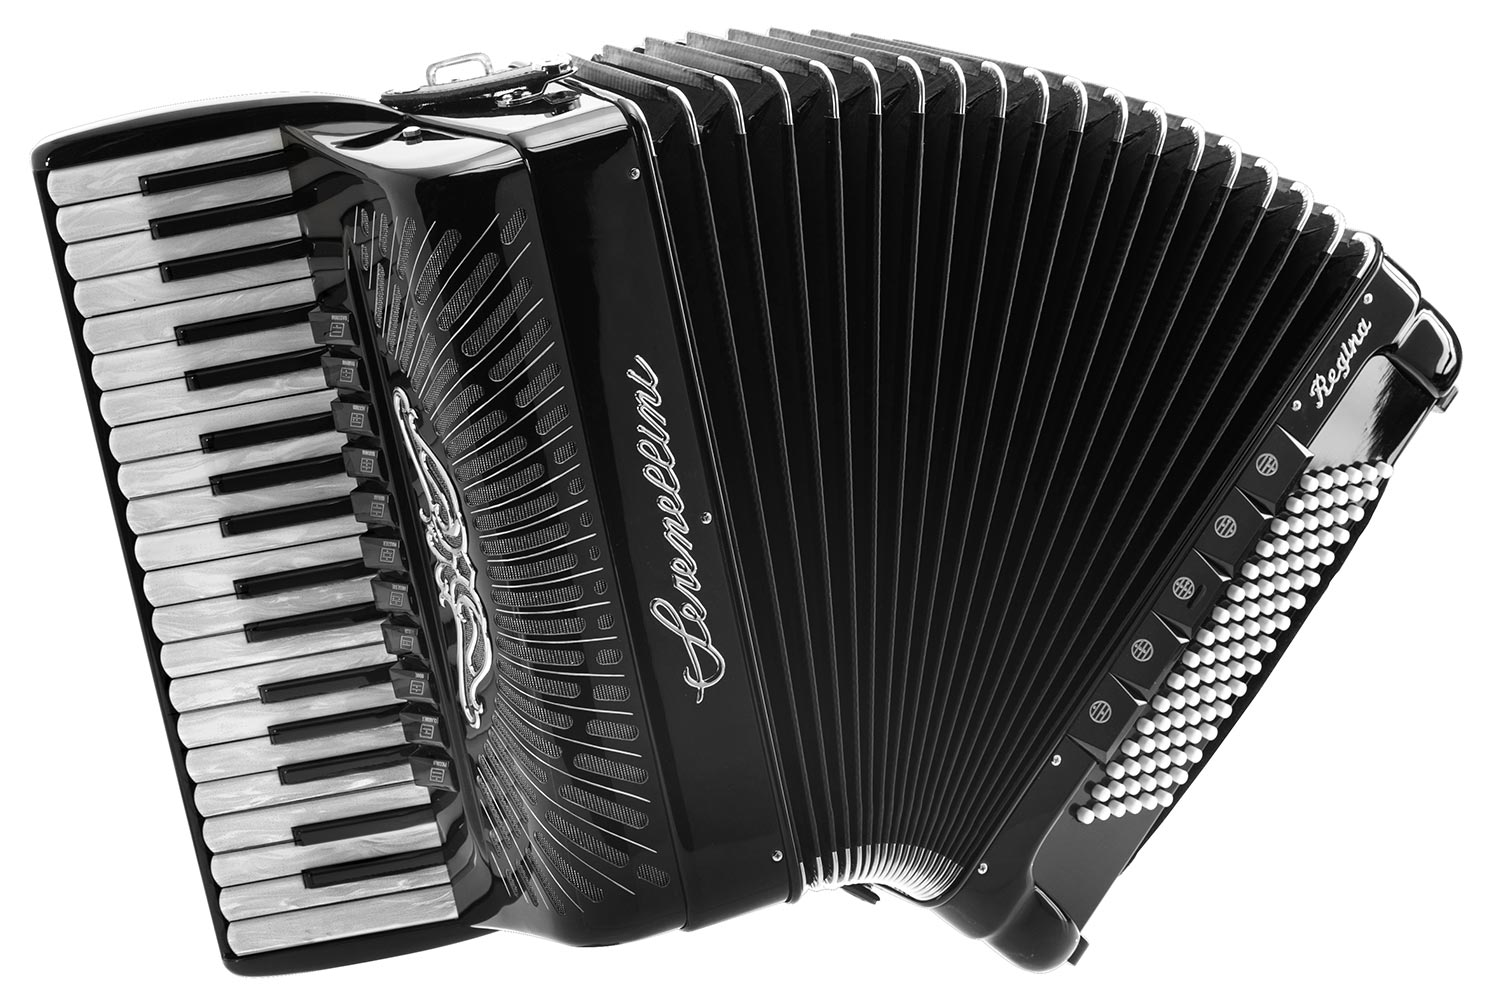 Serenellini Cassotto Regina Compact 2+2 piano accordion